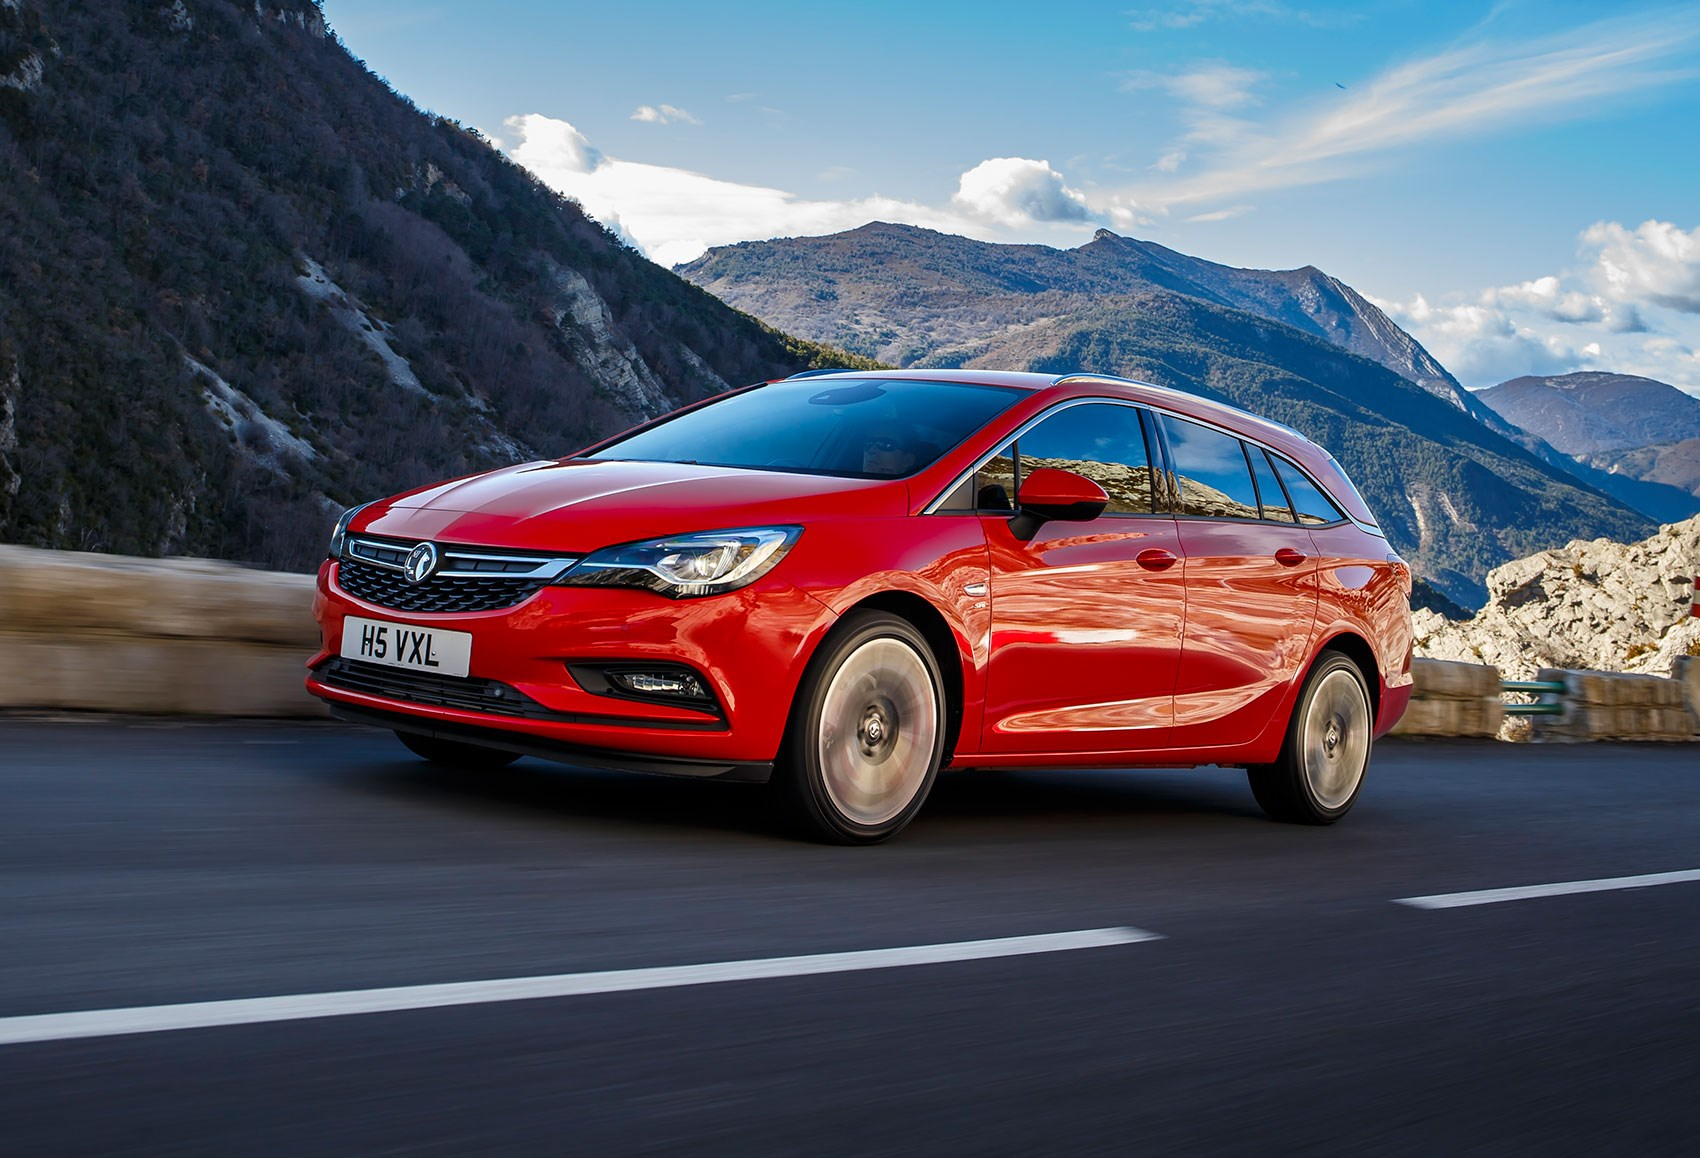 vauxhall astra sports tourer estate 1 6t 200ps elite nav 2016 review by car magazine. Black Bedroom Furniture Sets. Home Design Ideas